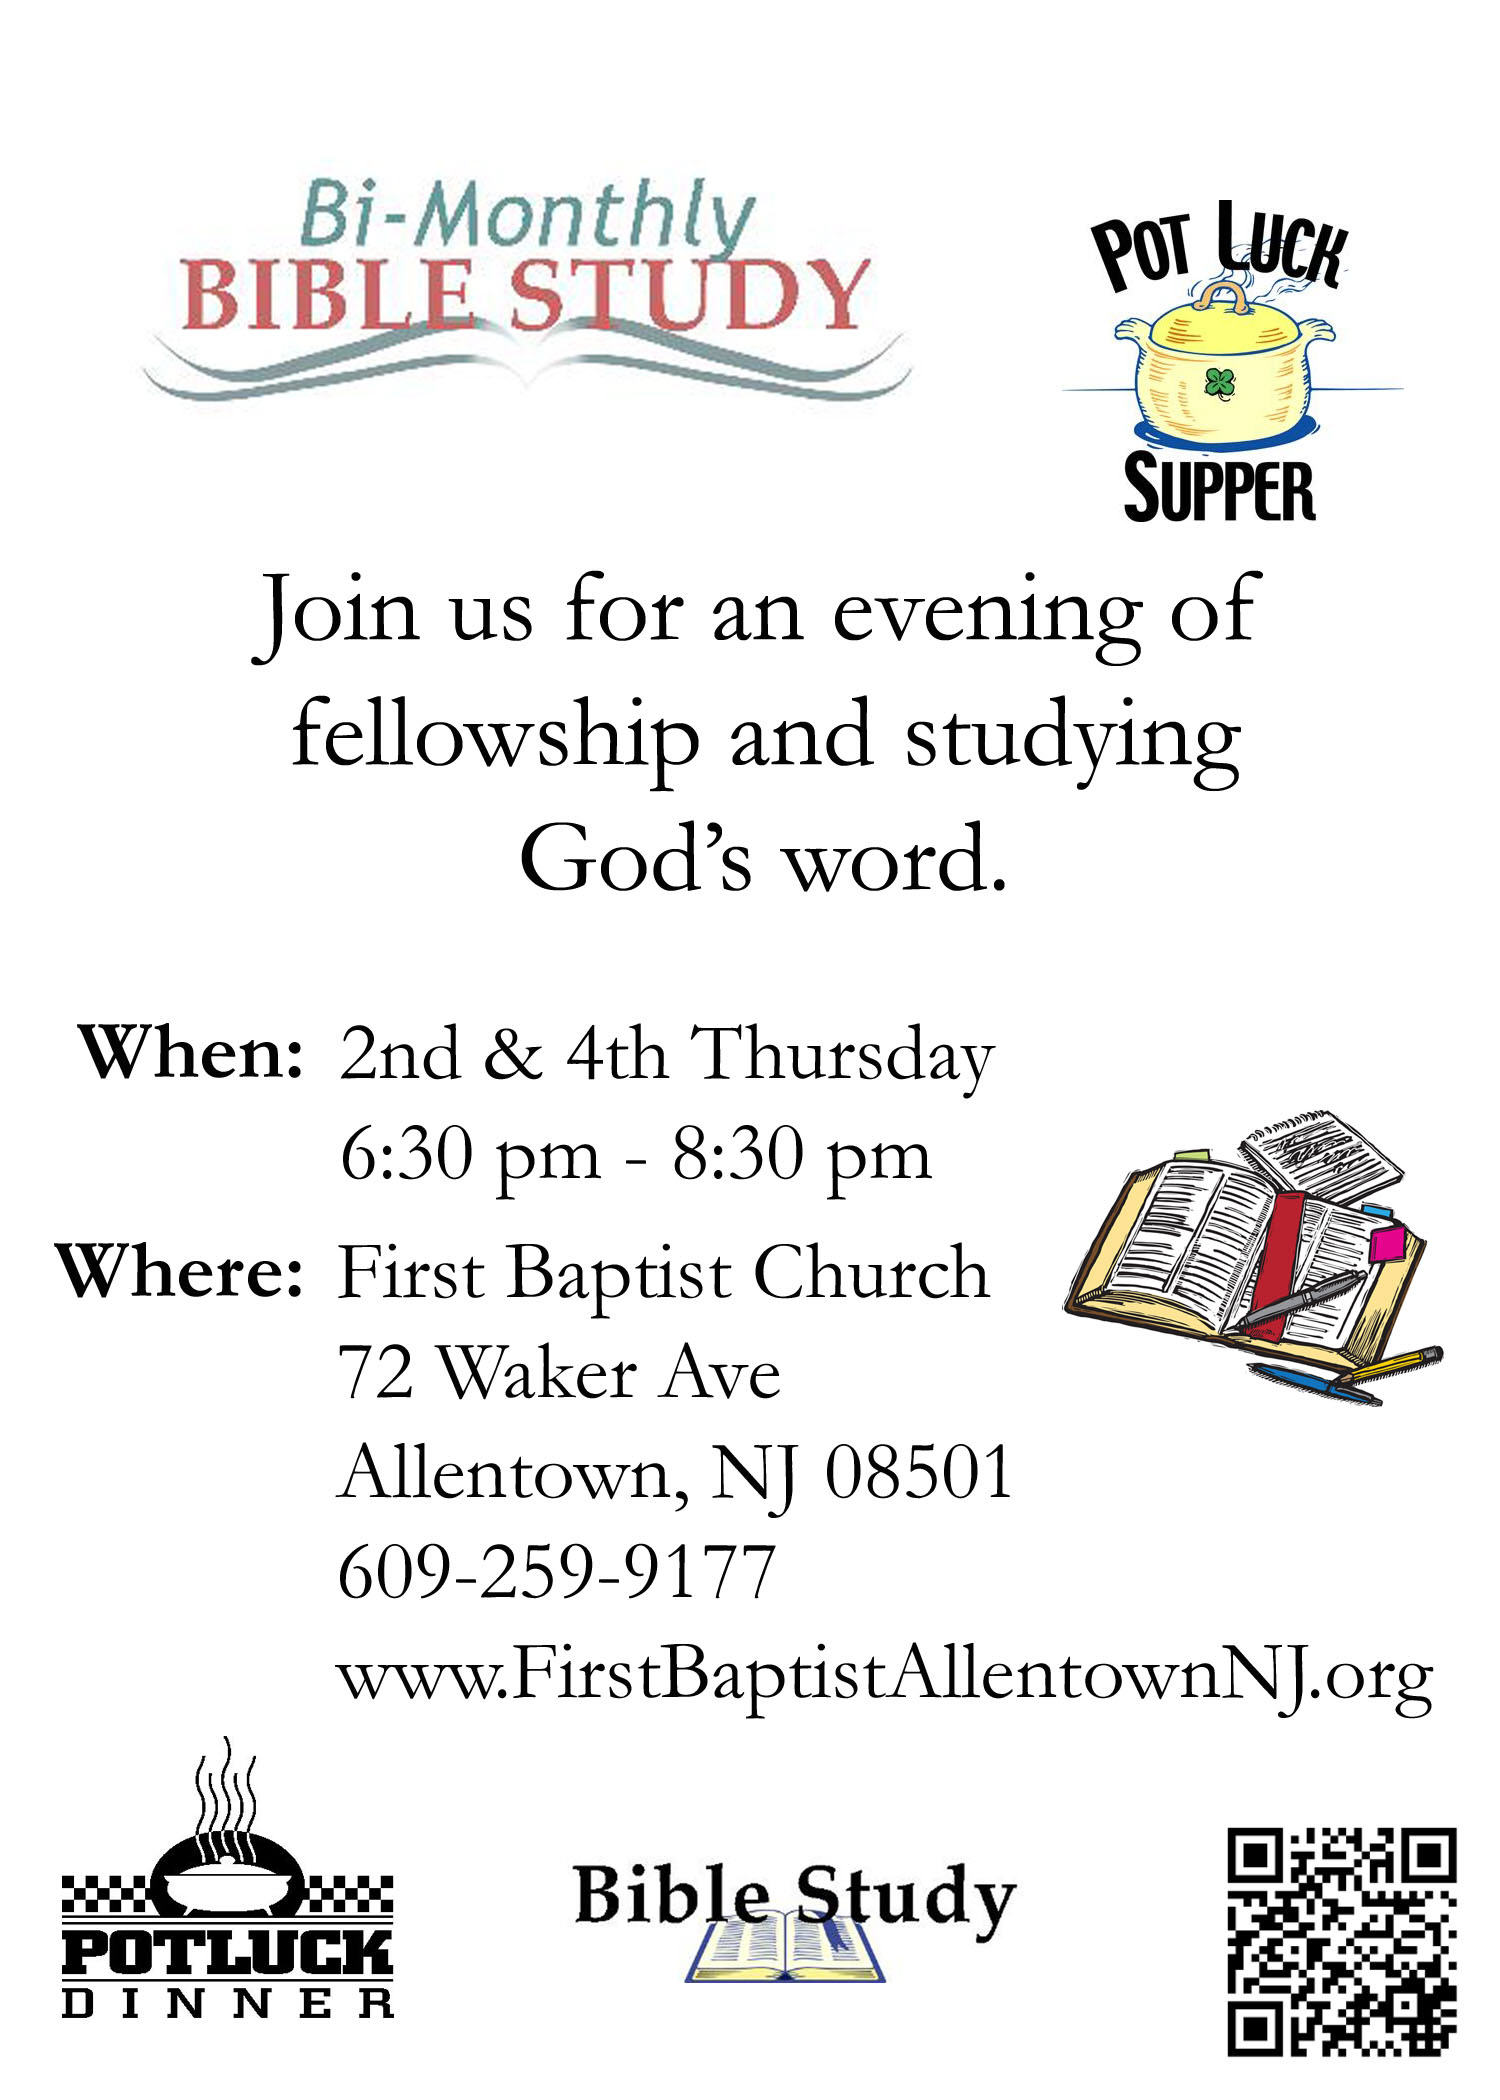 Covered Dish Supper & Bible Study - 2nd & 4th Thursday, 6:30 pm - 8:30 pm